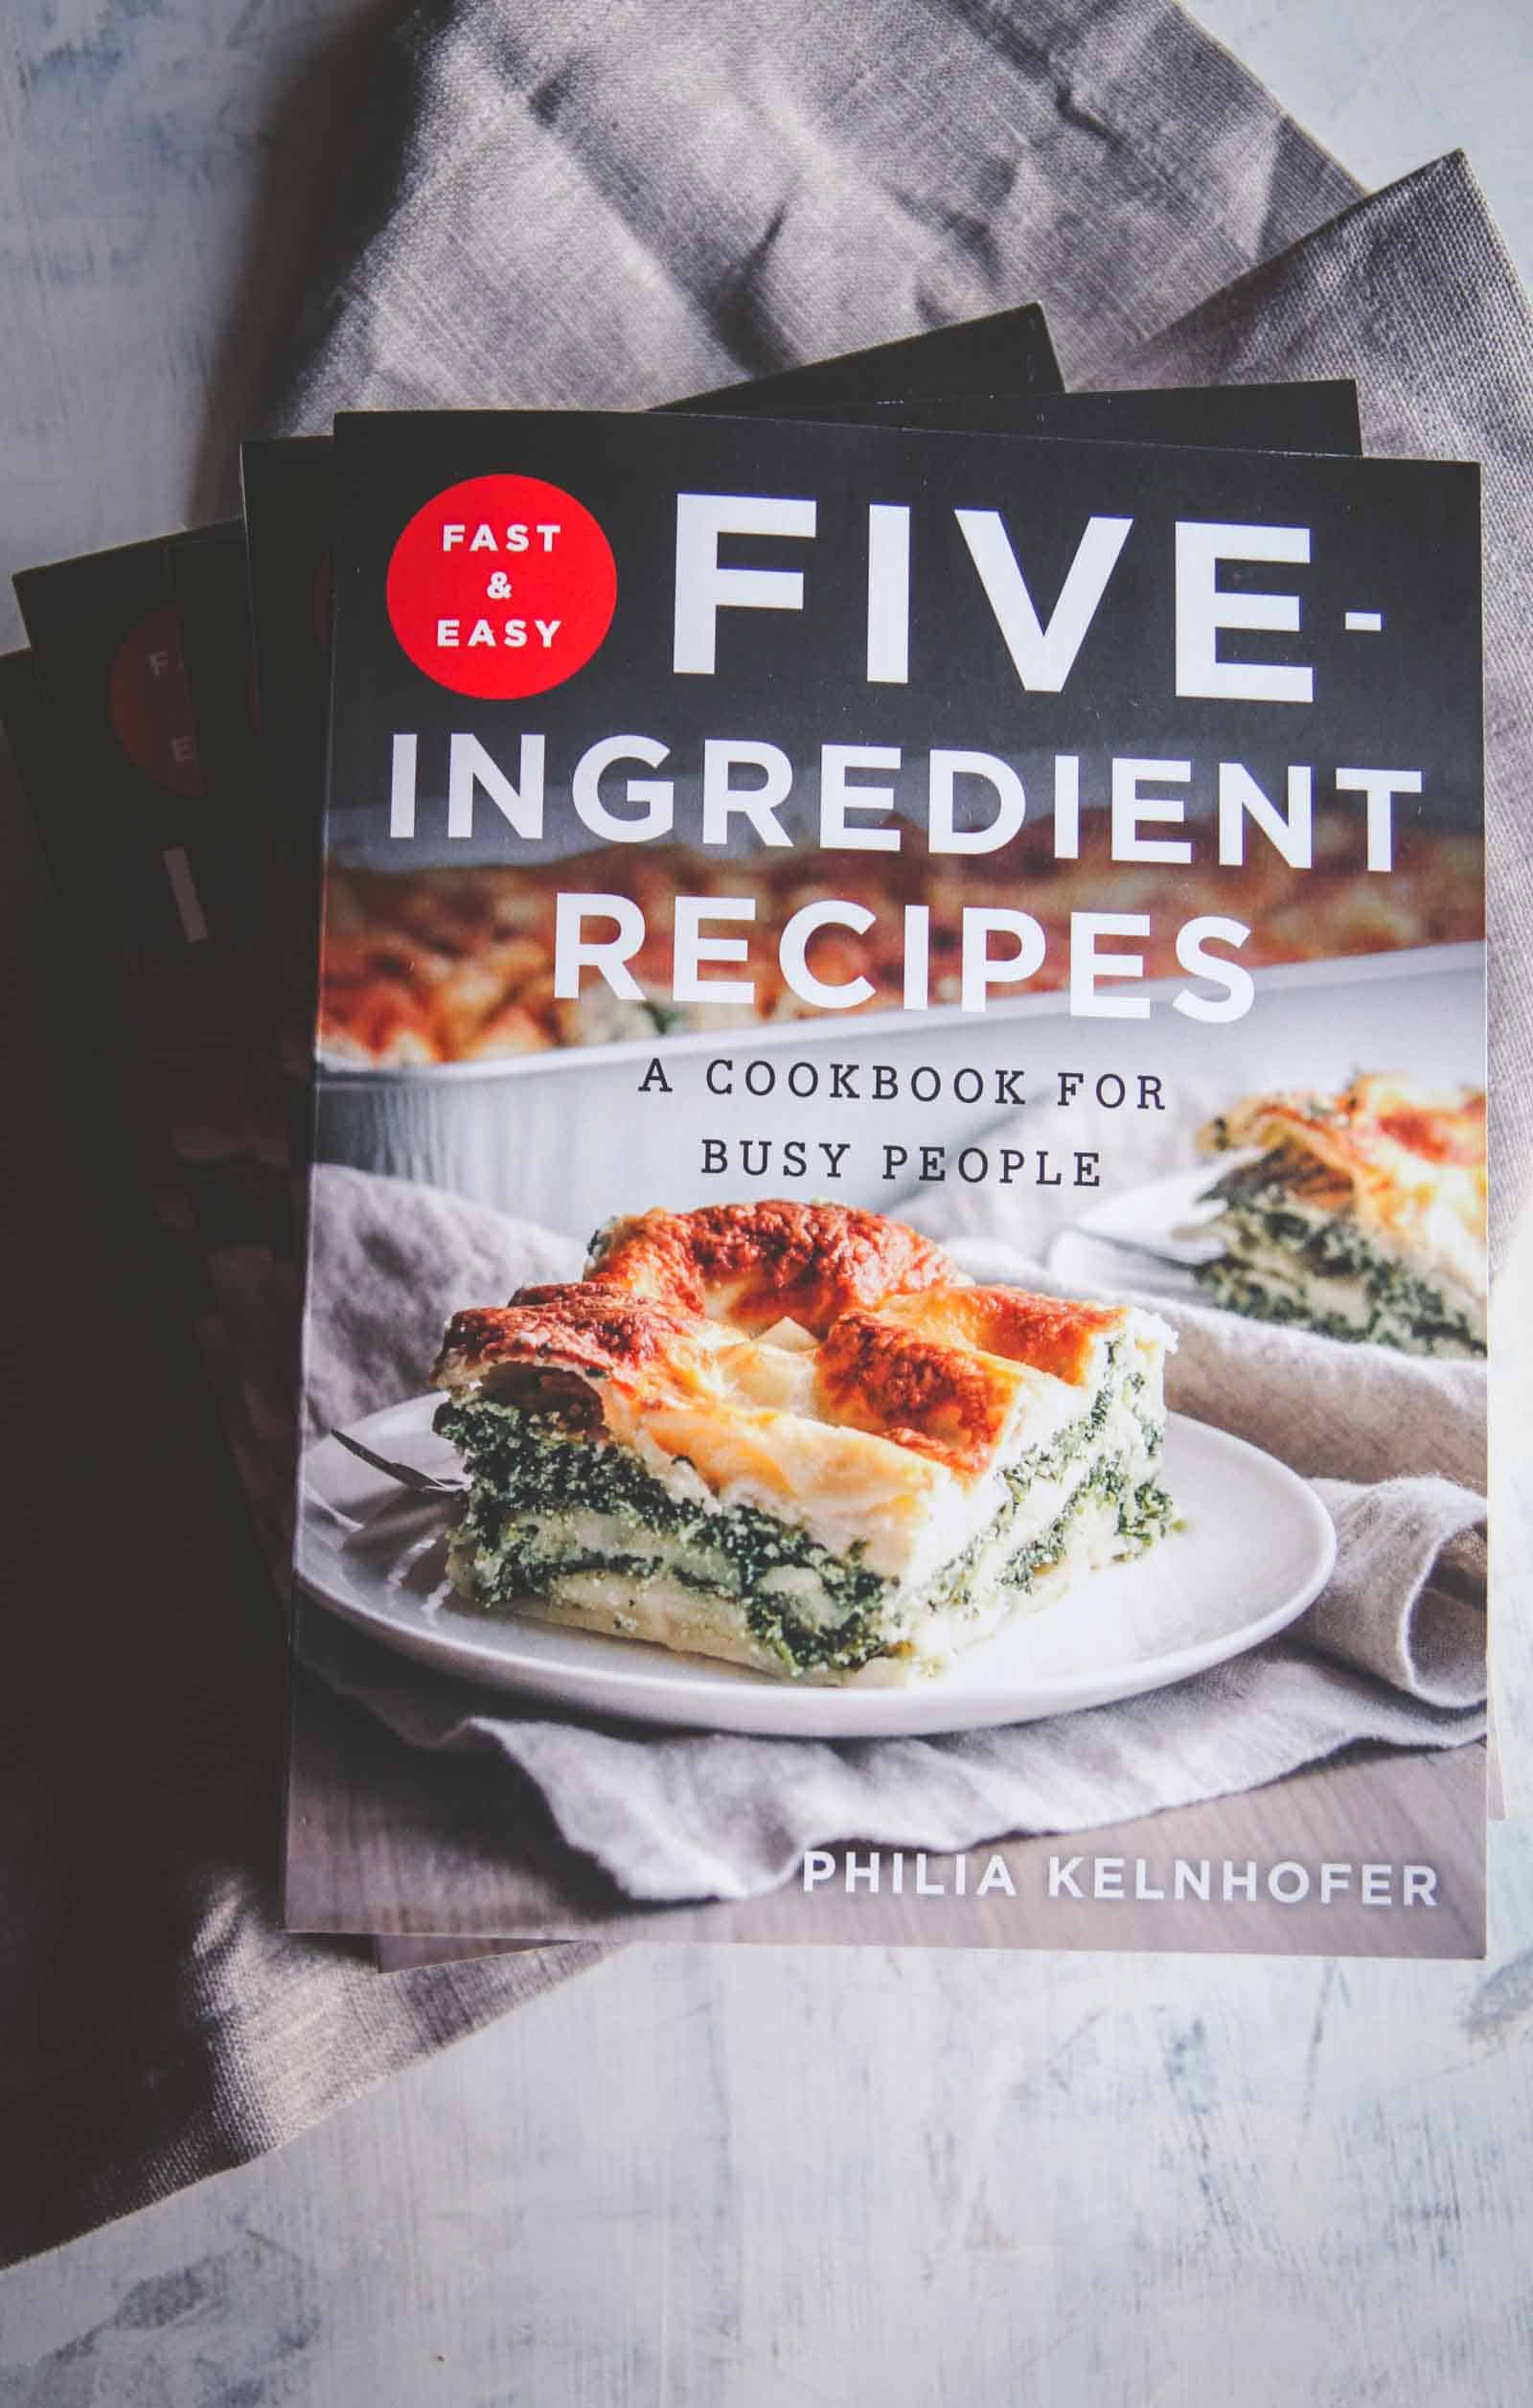 Fast and easy 5-ingredient cookbook. A Cookbook for busy people